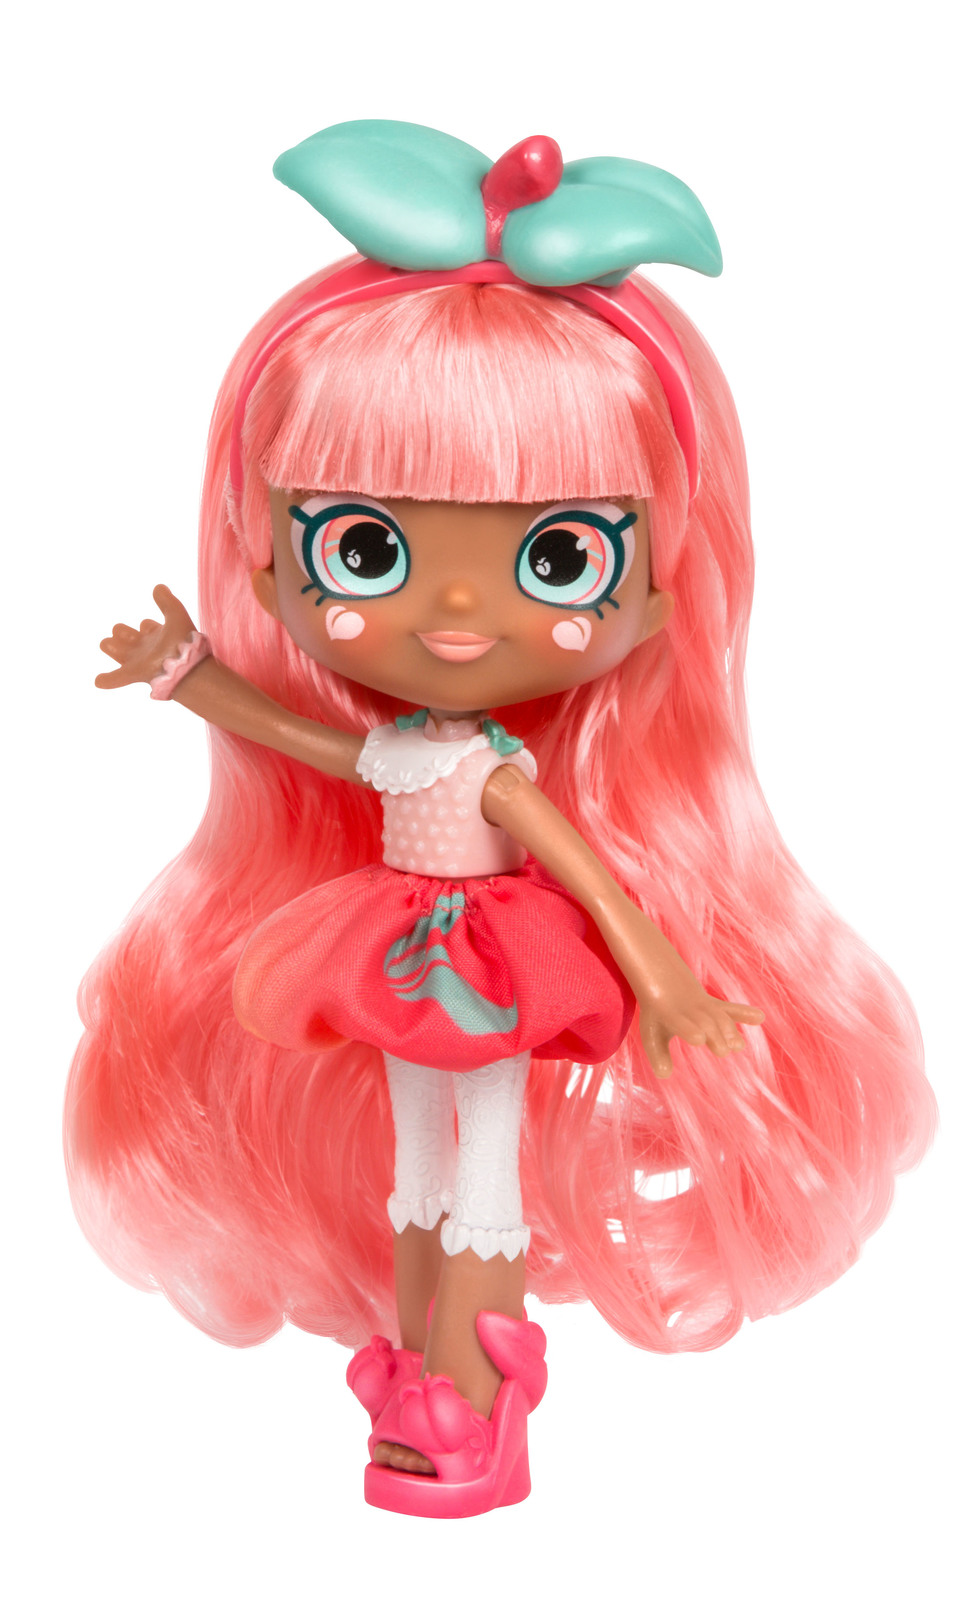 Shopkins: Series 7 - Shoppies Doll (Summer Peaches) image